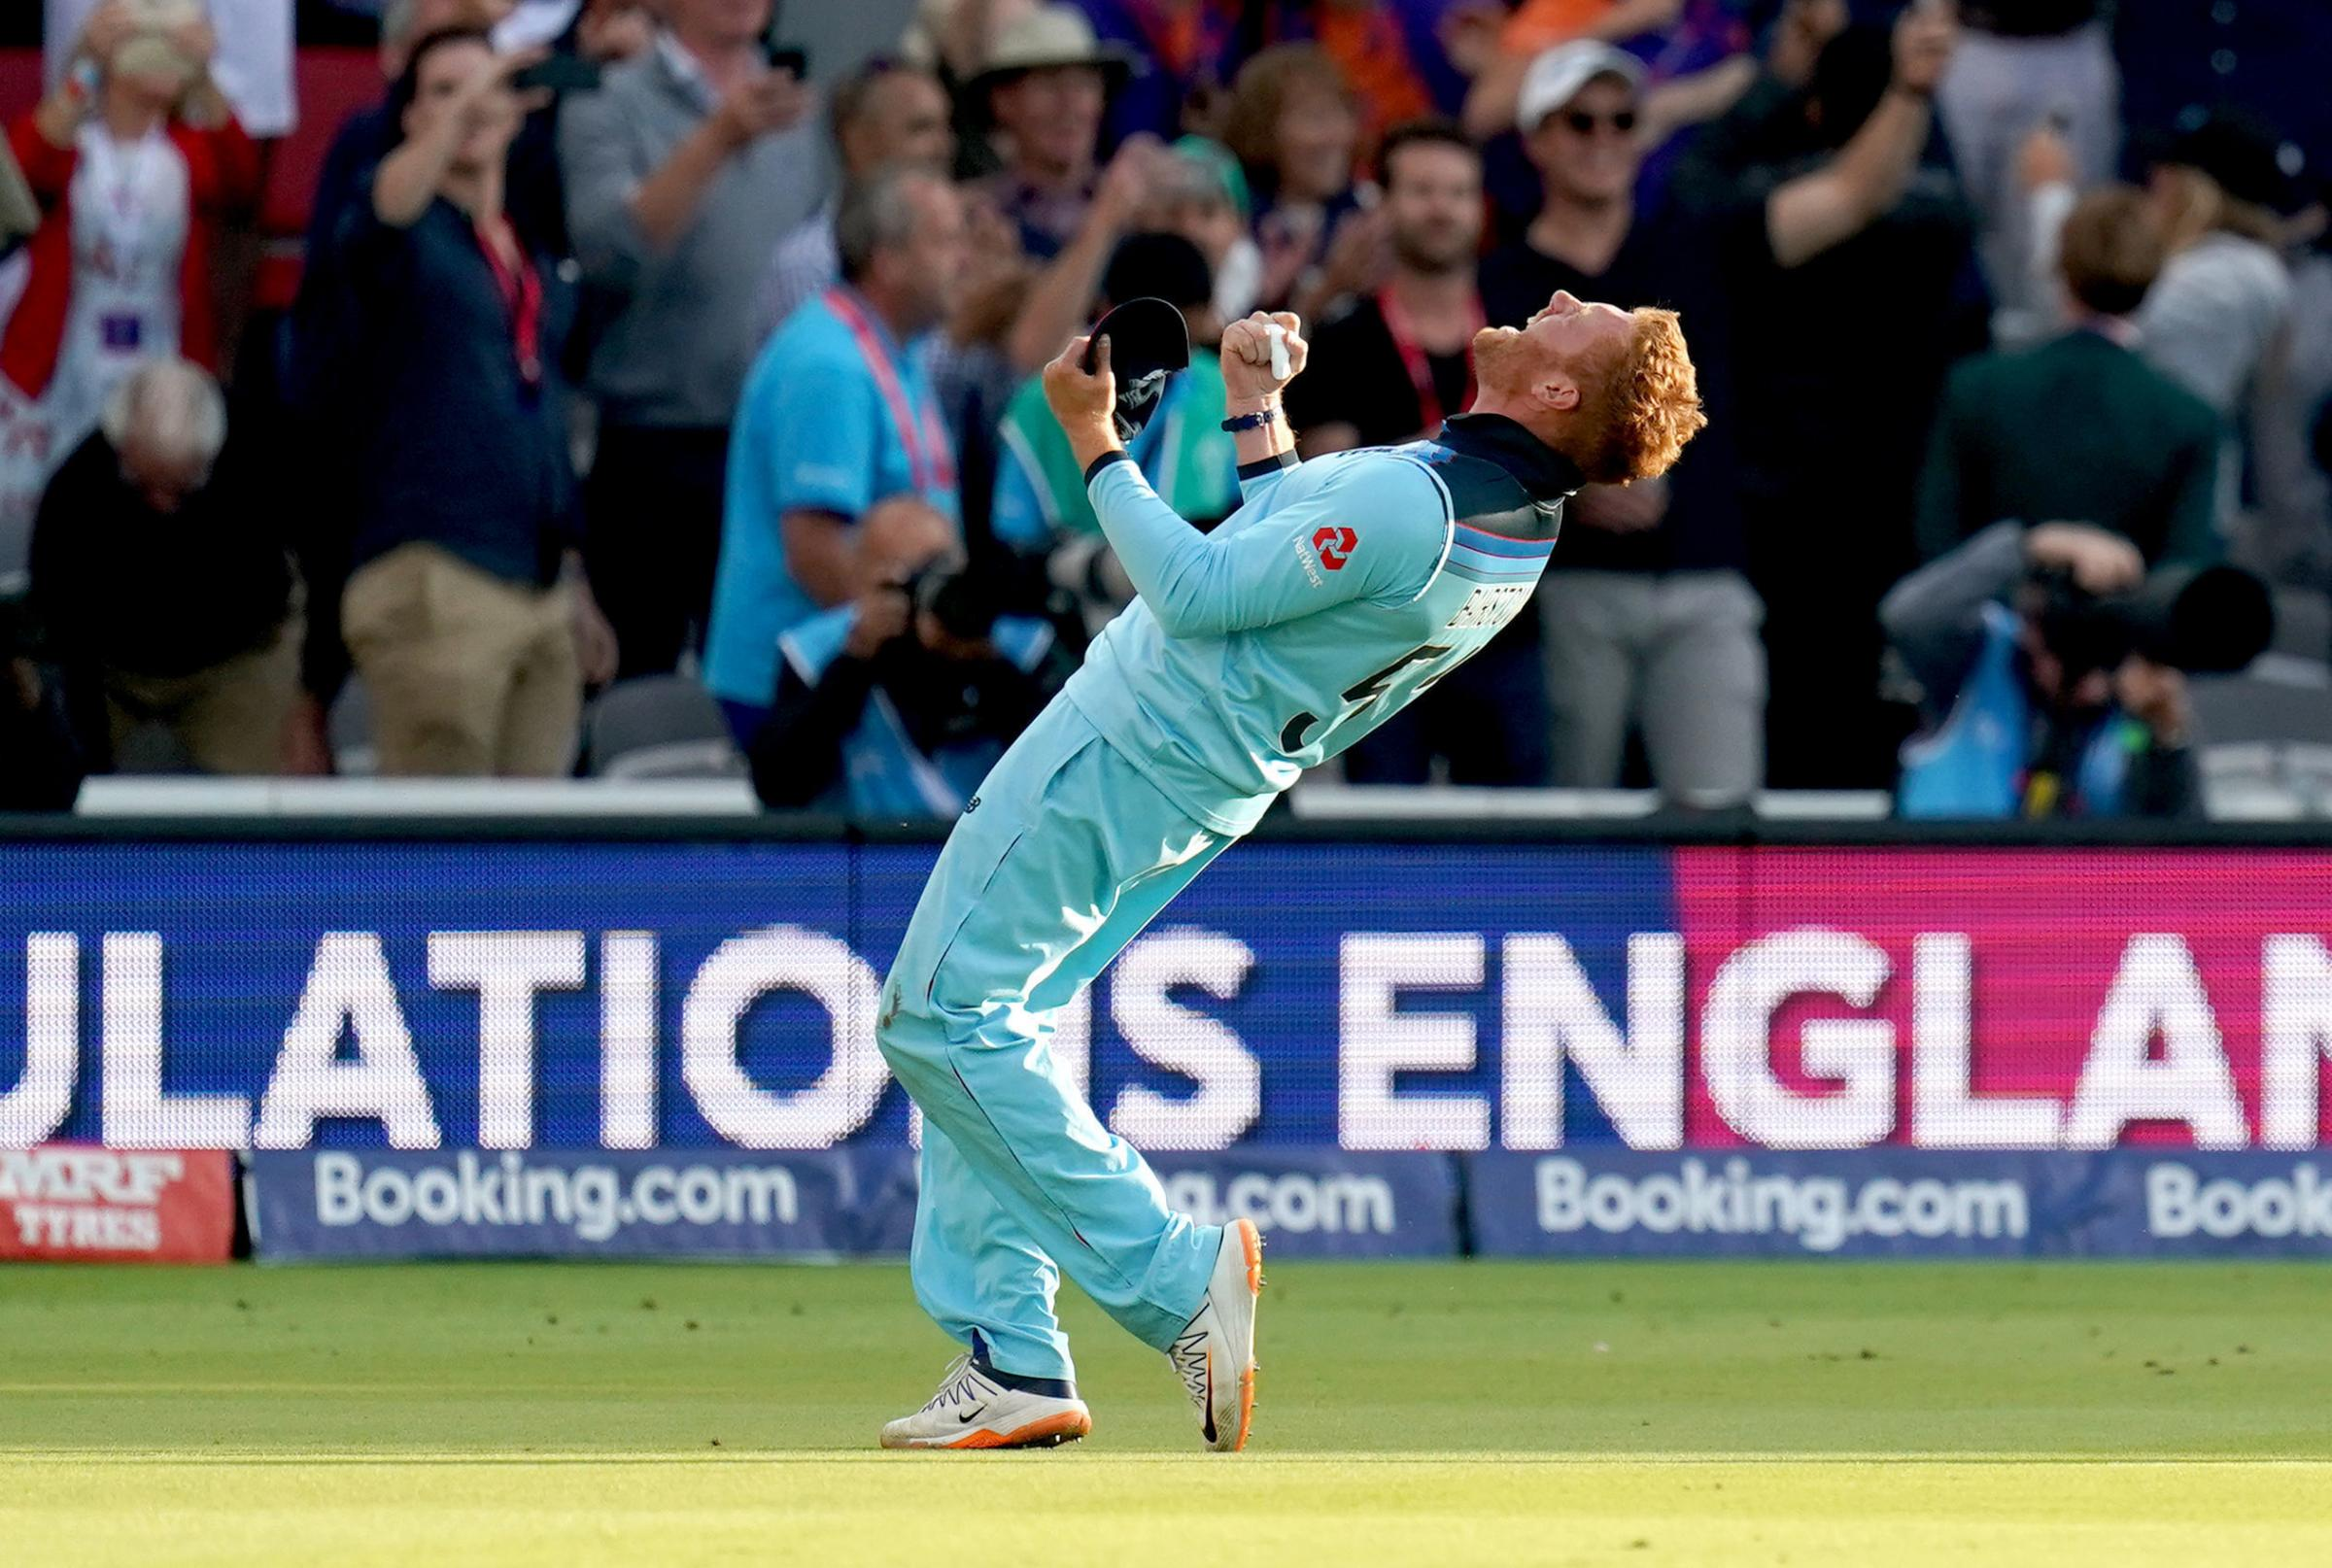 Adil Rashid and Jonny Bairstow are pride of Bradford as England win Cricket World Cup